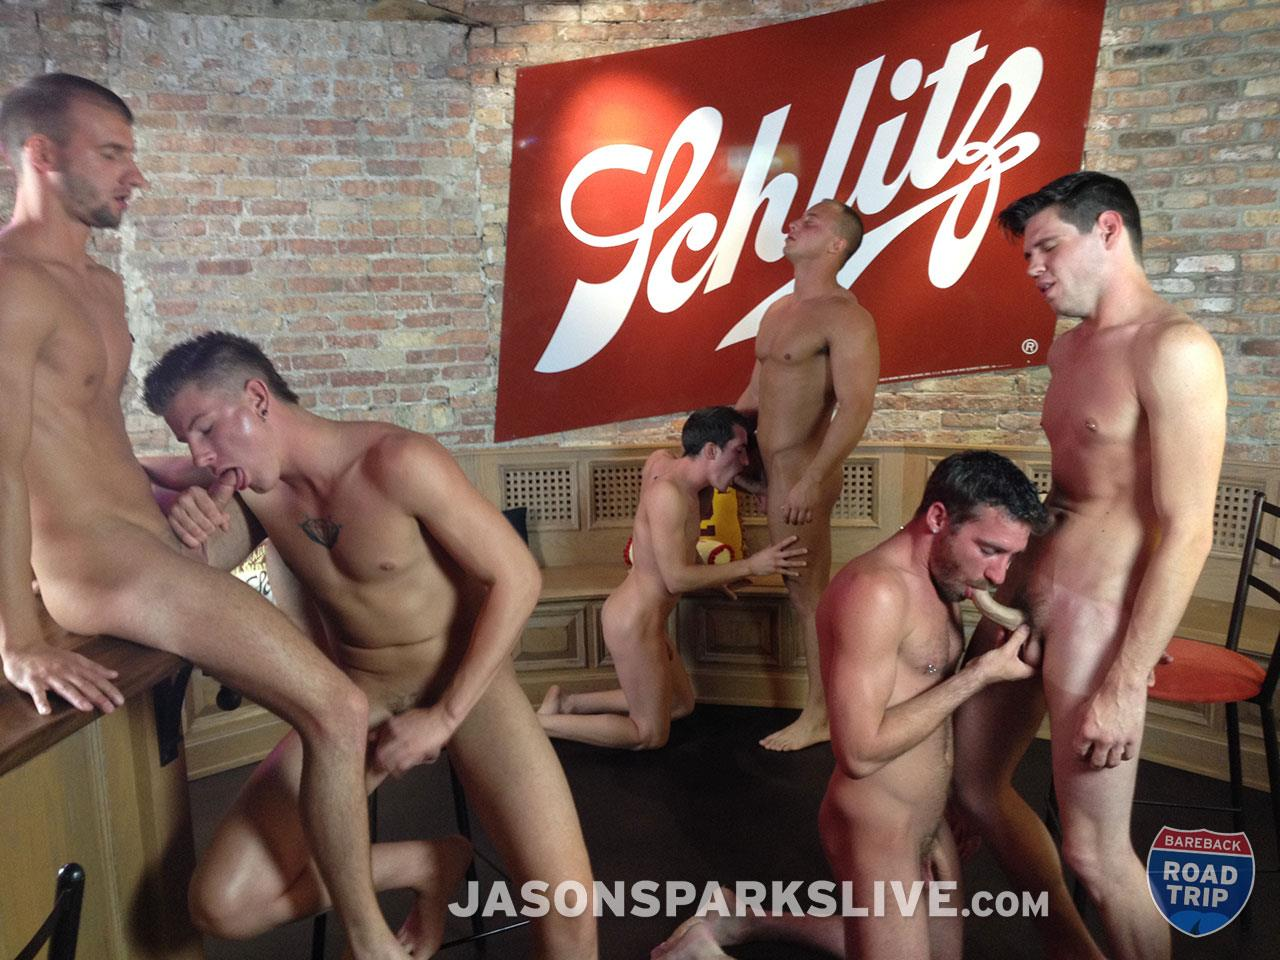 Jason-Sparks-Live-Dustin-Tyler-Shawn-Andrews-Brendon-Scott-Corbin-Riley-Antonio-Paul-Jake-Matthews-Bareback-Orgy-Amateur-Gay-Porn-06 Big Cock Amateur Bareback Orgy in Milwaukee